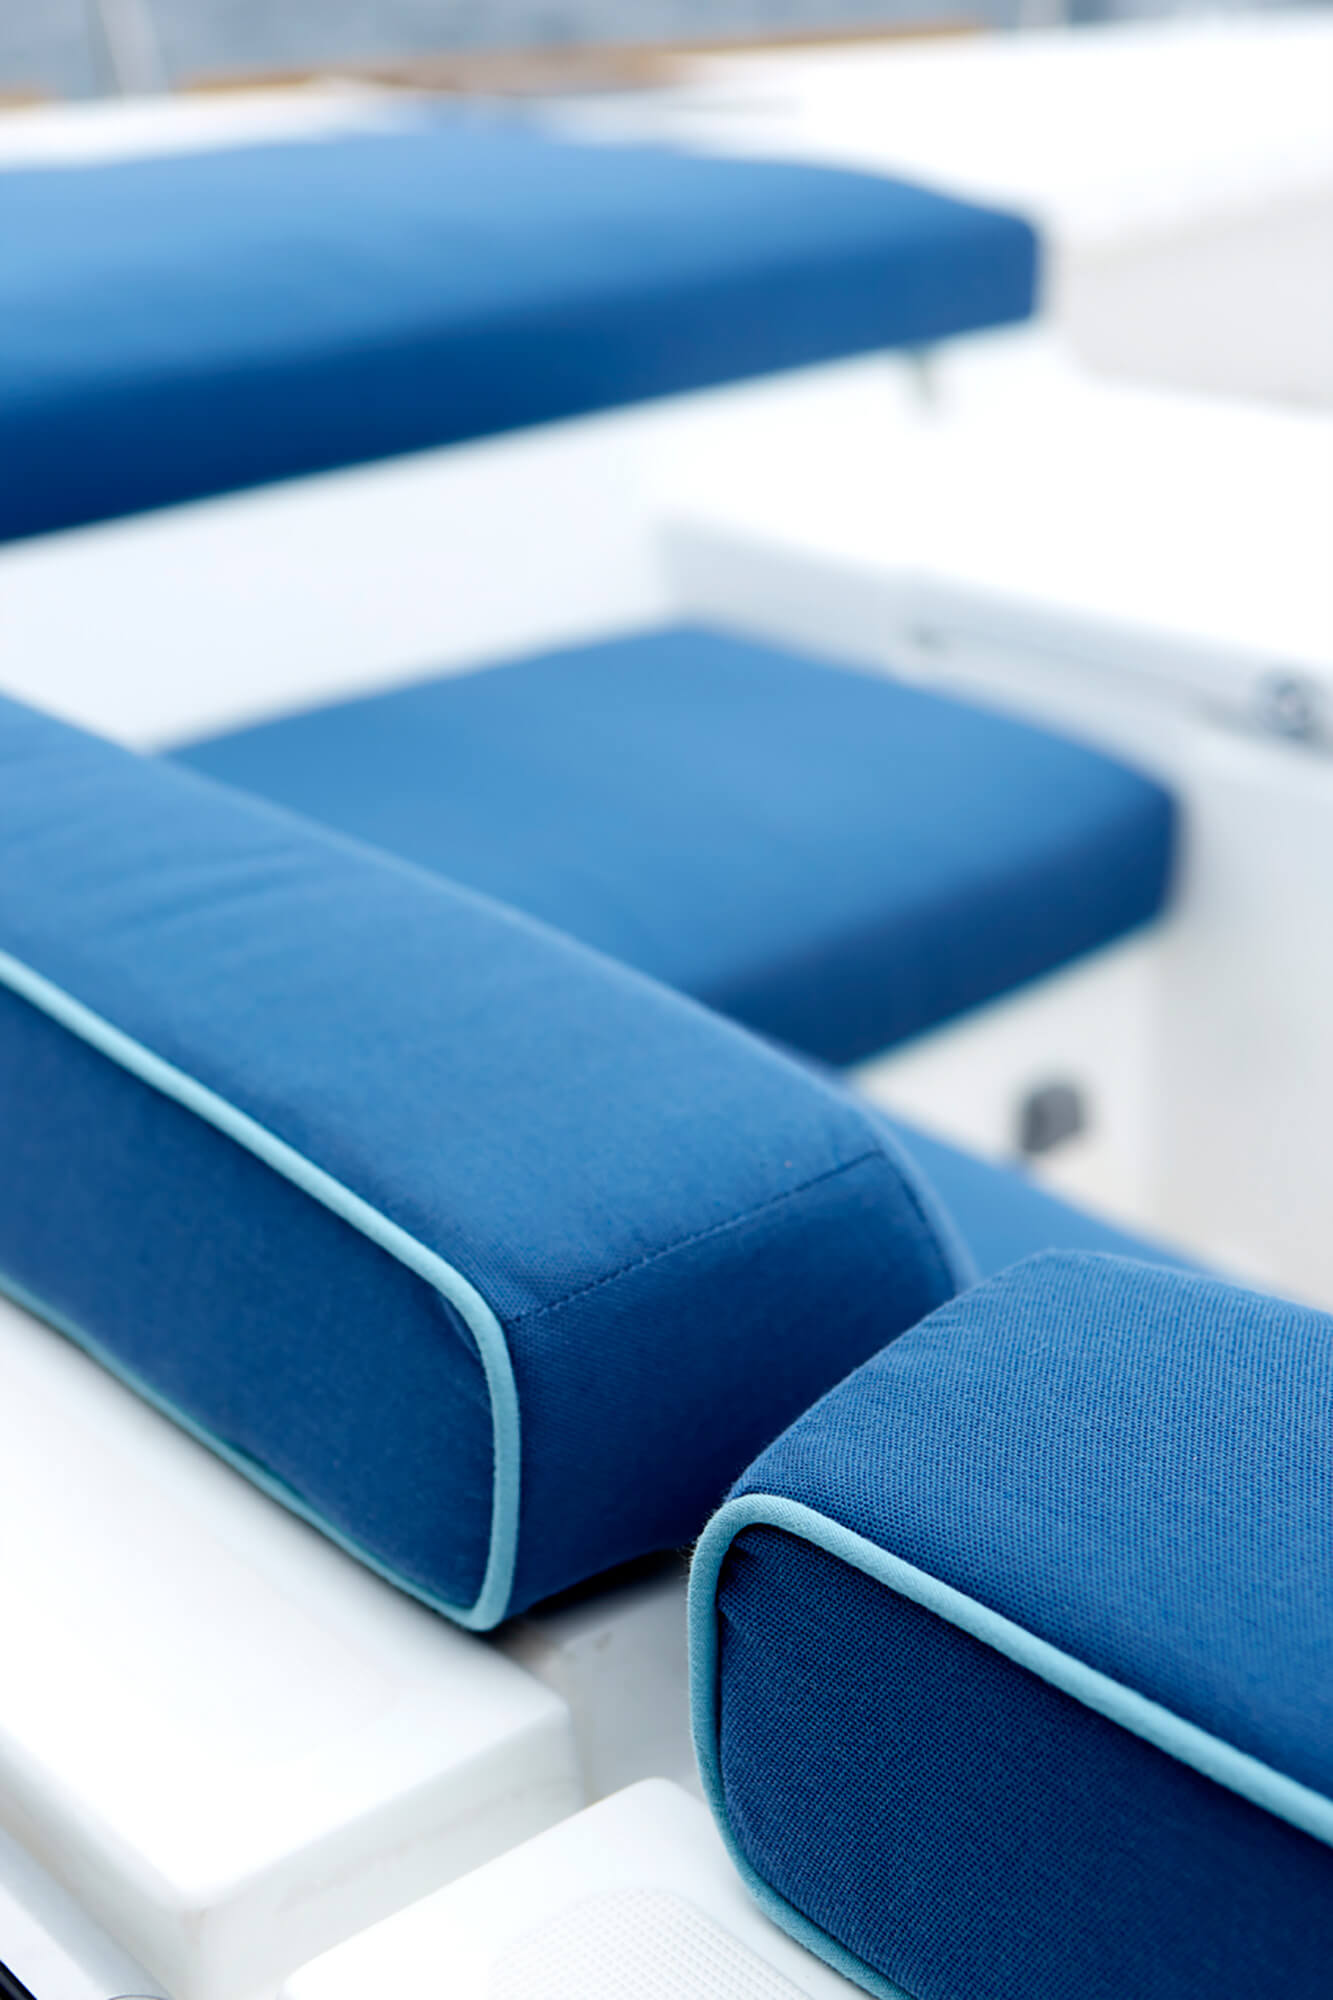 Detail of blue cushions with light blue piping on boat seat cushions